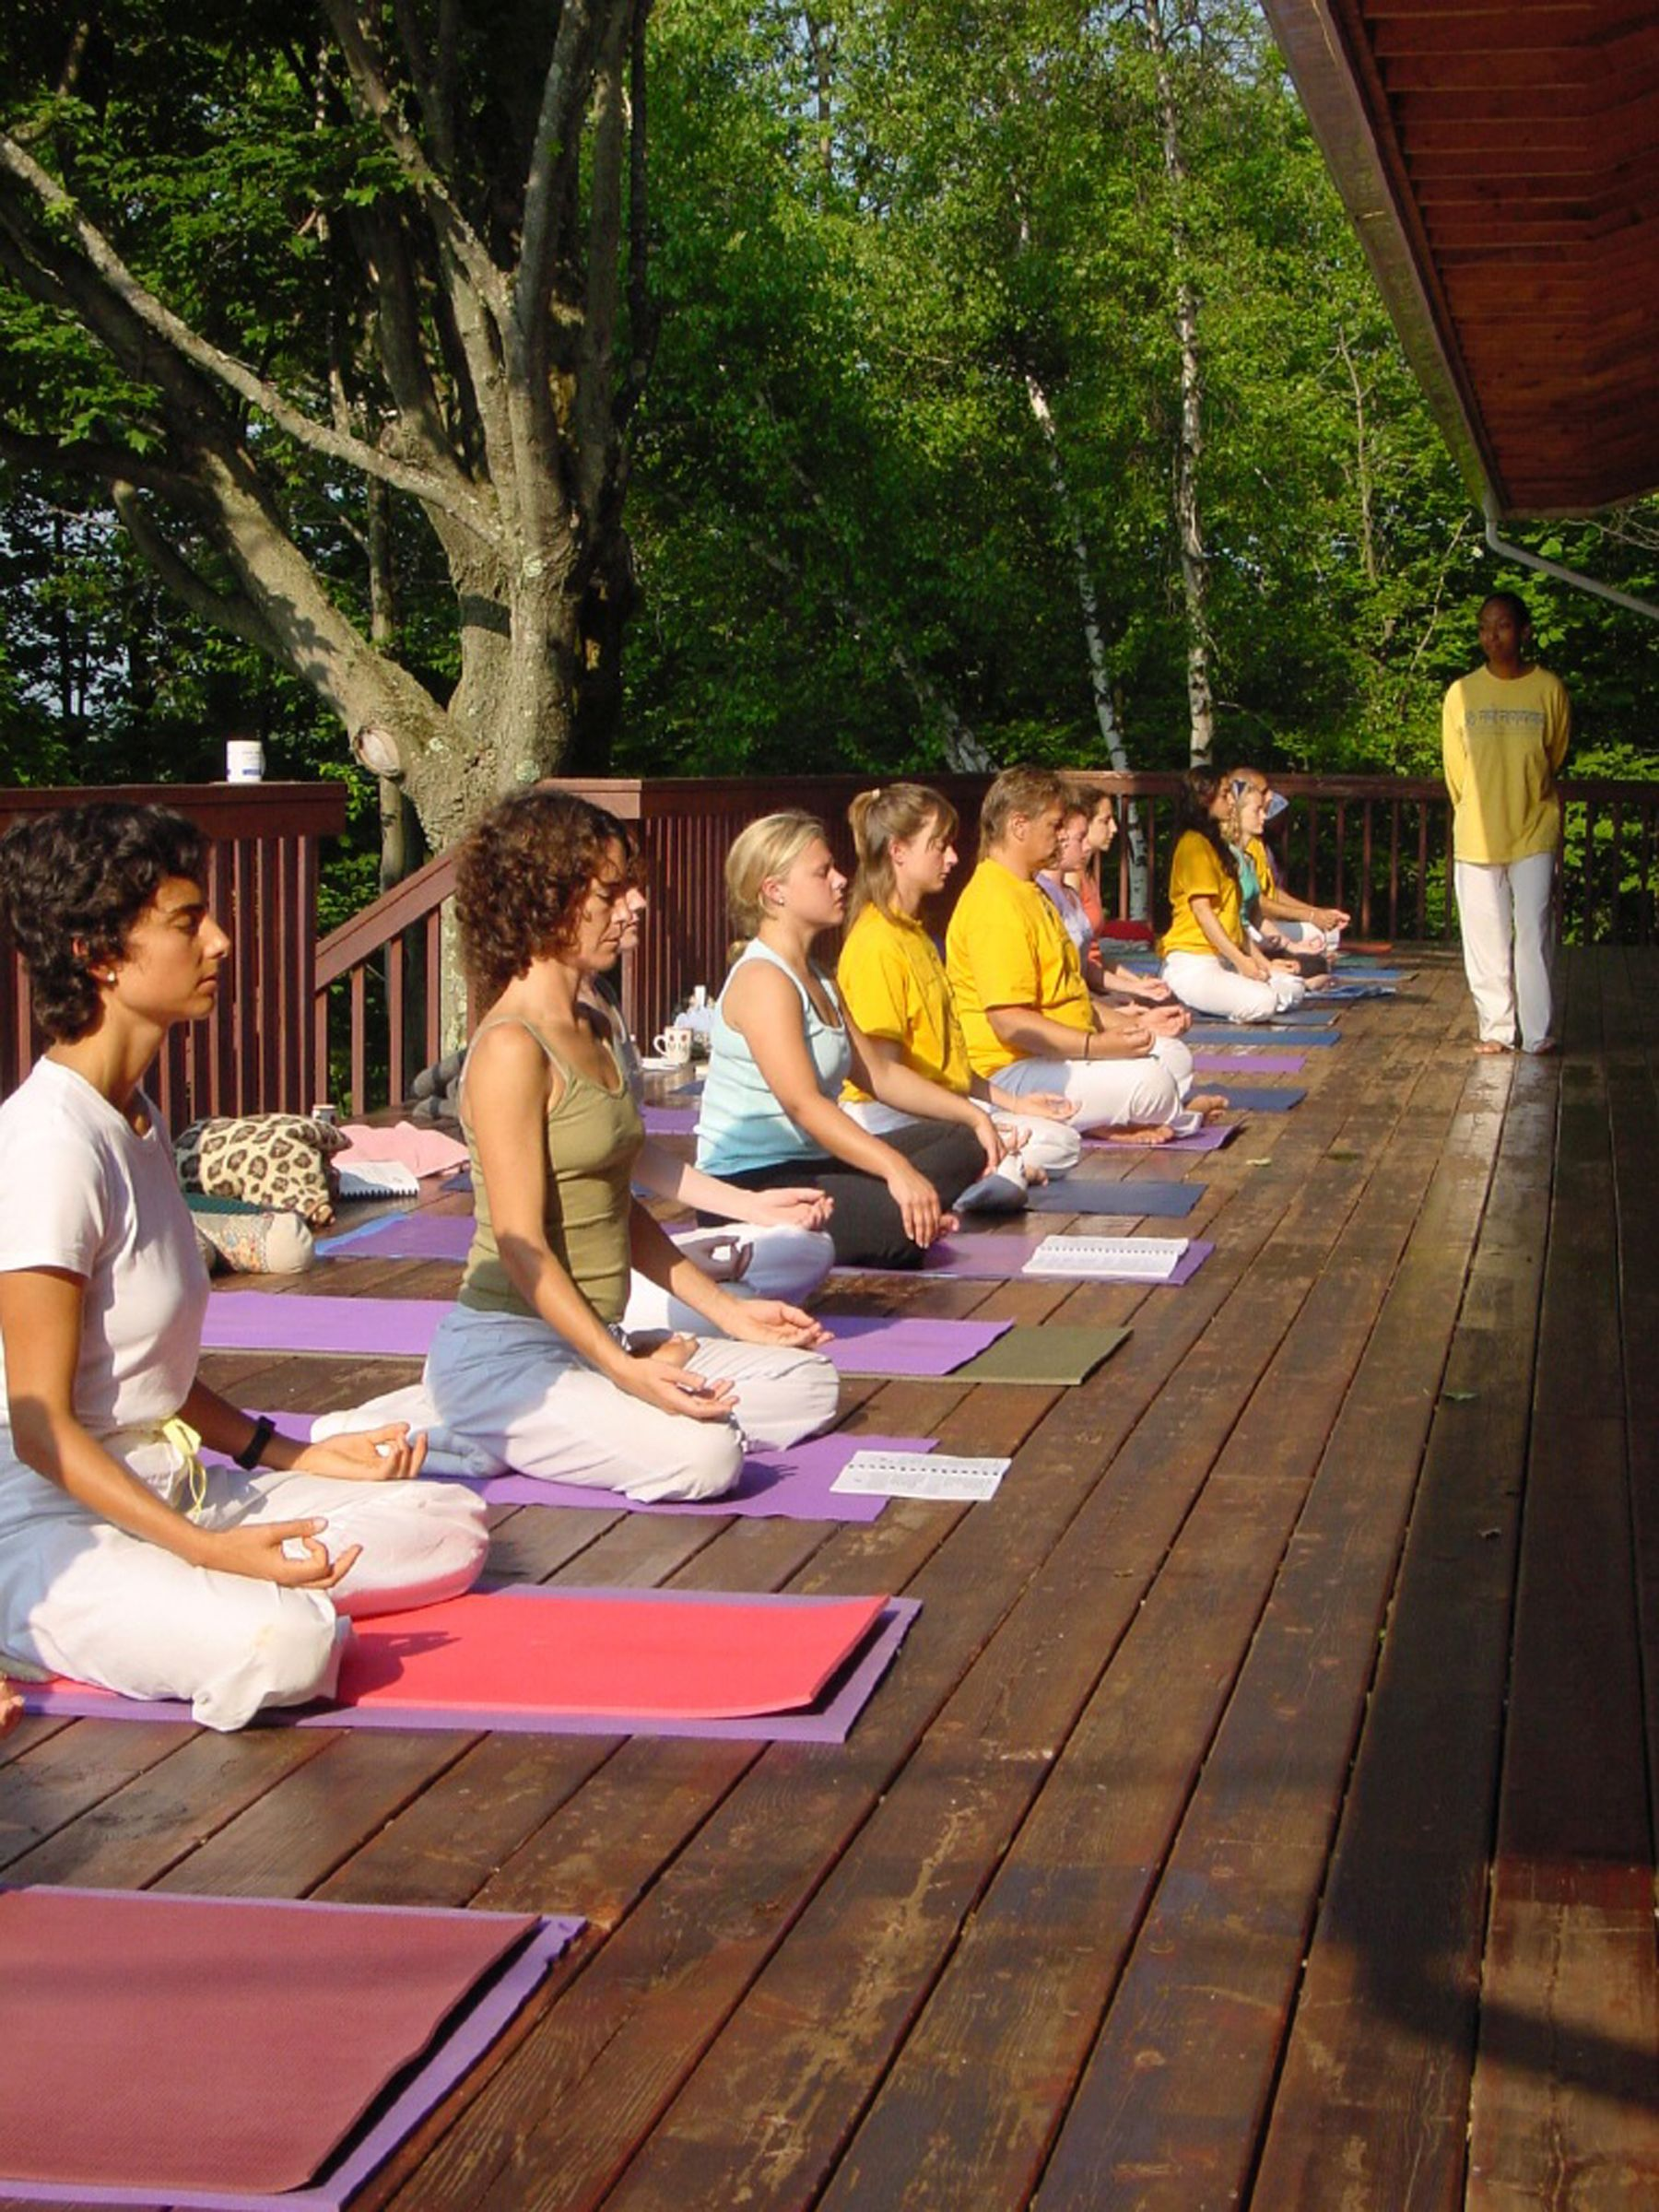 Sivananda Ashram Yoga Ranch New York Yoga And Meditation Retreats Yoga Teacher Training Yoga Meditation Retreat Meditation Retreat Retreat